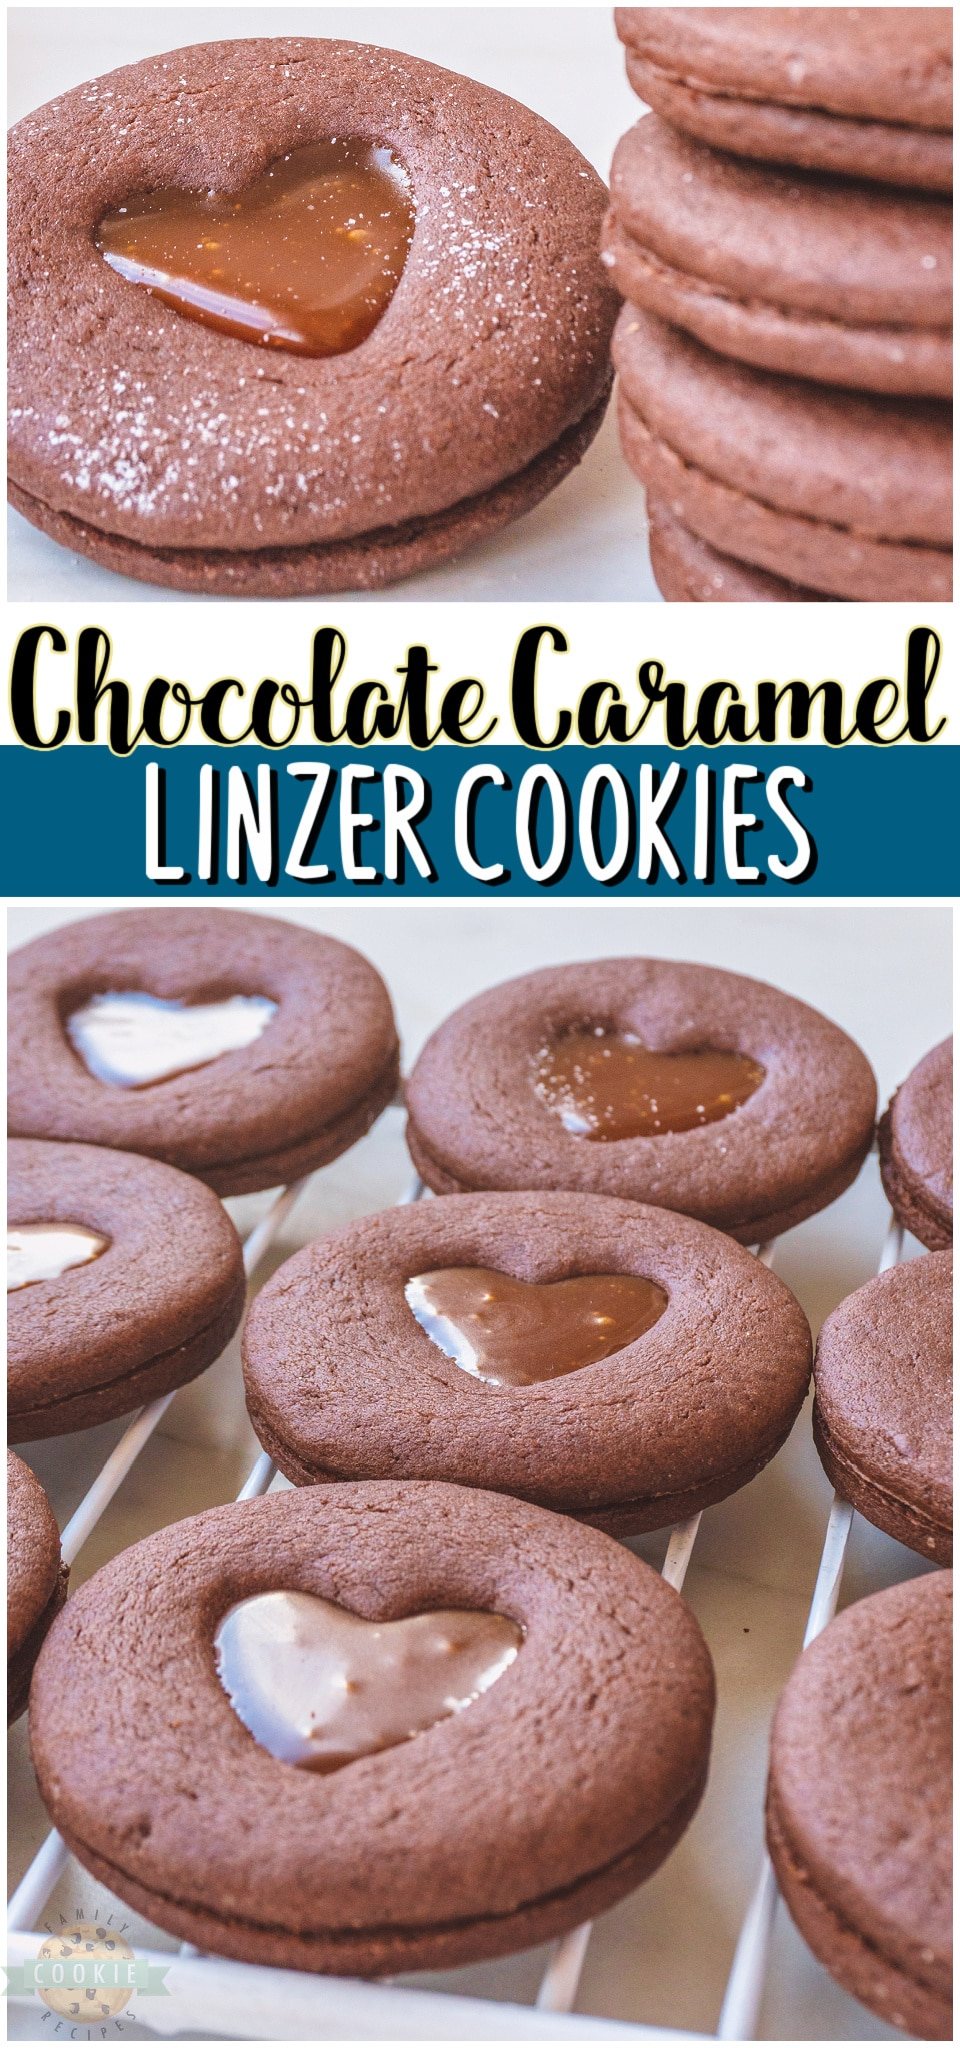 Chocolate Caramel Linzer Cookies are sandwich cookies that pack a lot of flavor into every gooey bite. With caramel filled chocolate cookies, every bite is going to be delicious but making these cookies is half of the fun!